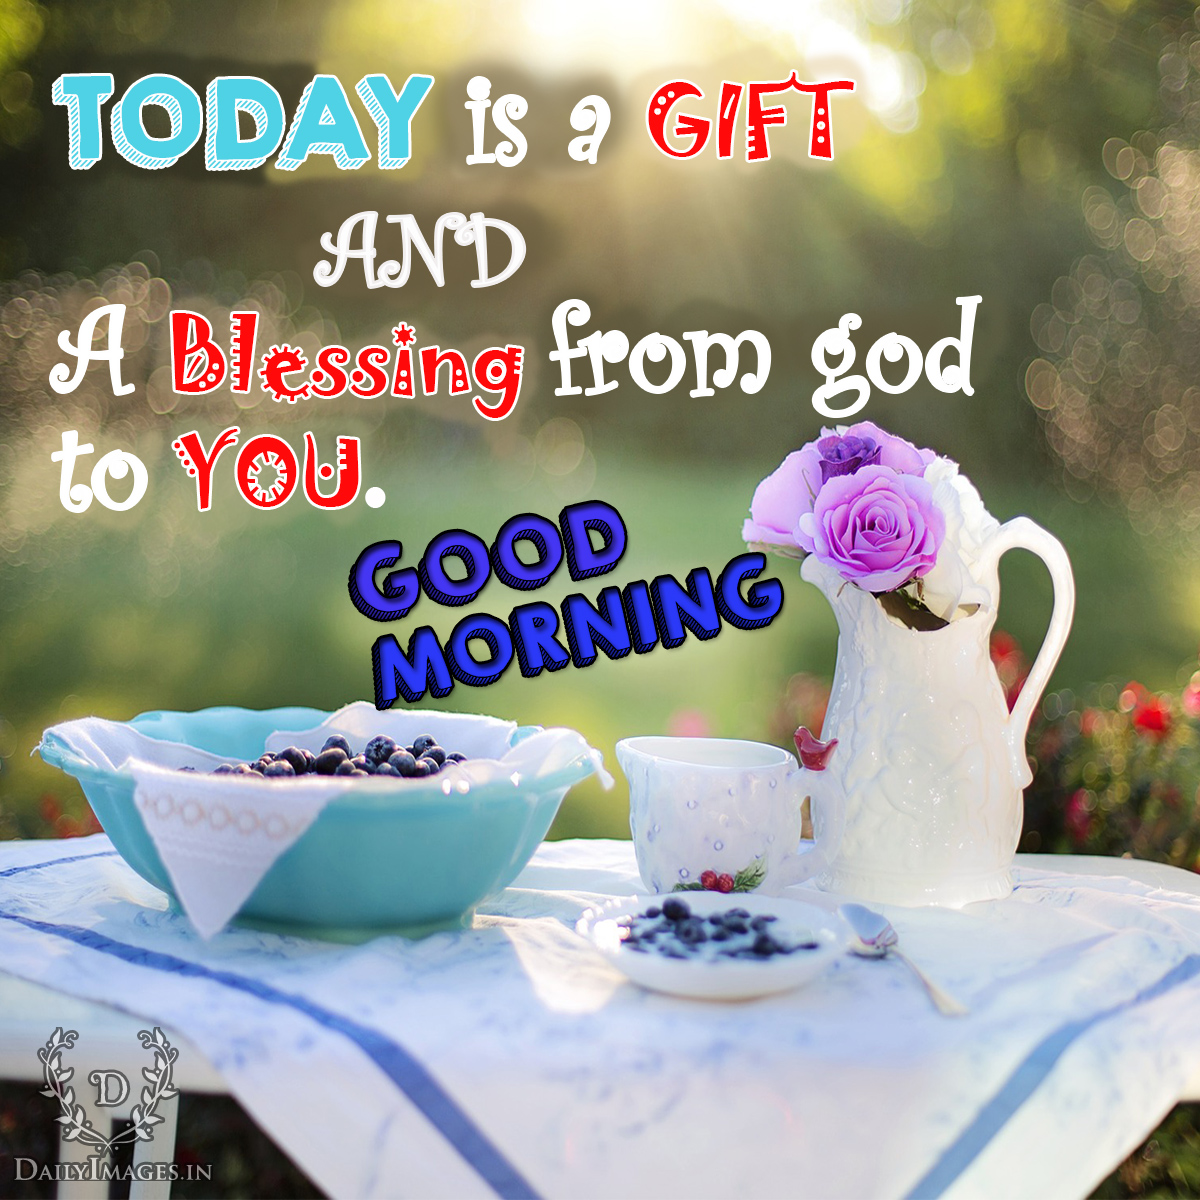 Today is a gift and a blessing from god to you good morning today is a gift and a blessing from god to you good morning daily images negle Choice Image